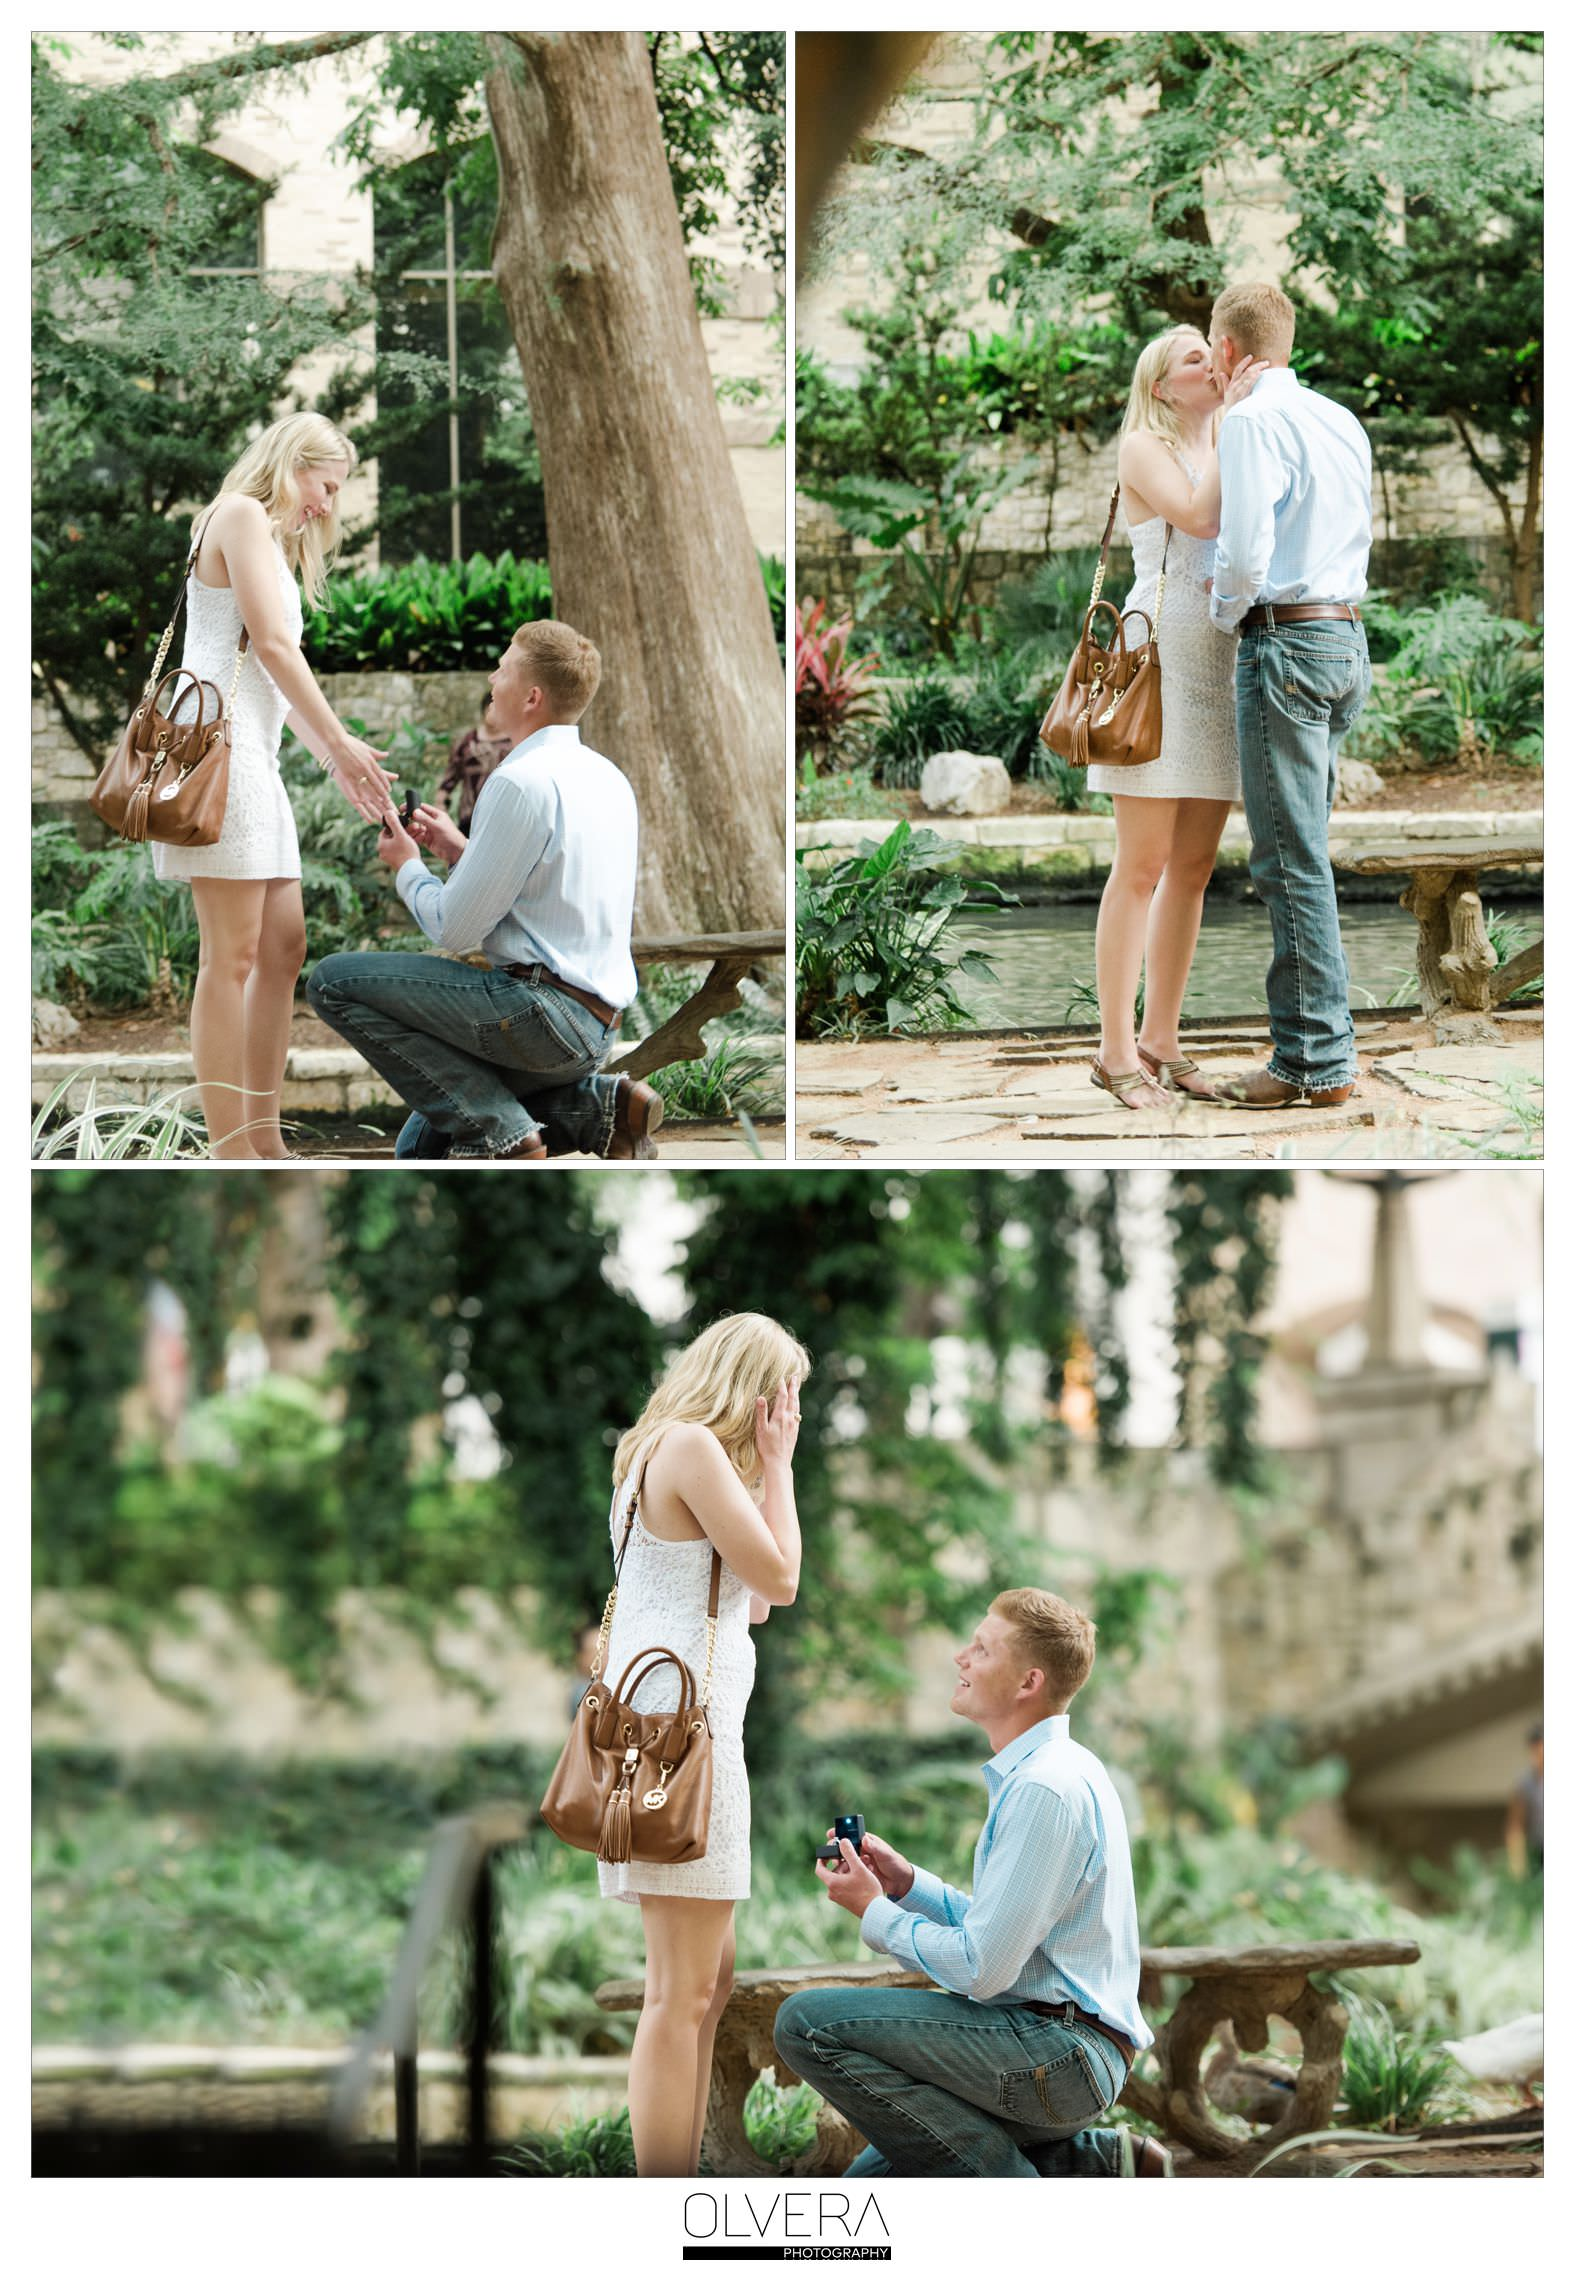 Marriage Island_Riverwalk_Proposal_san antonio_TX_wedding photographer 1